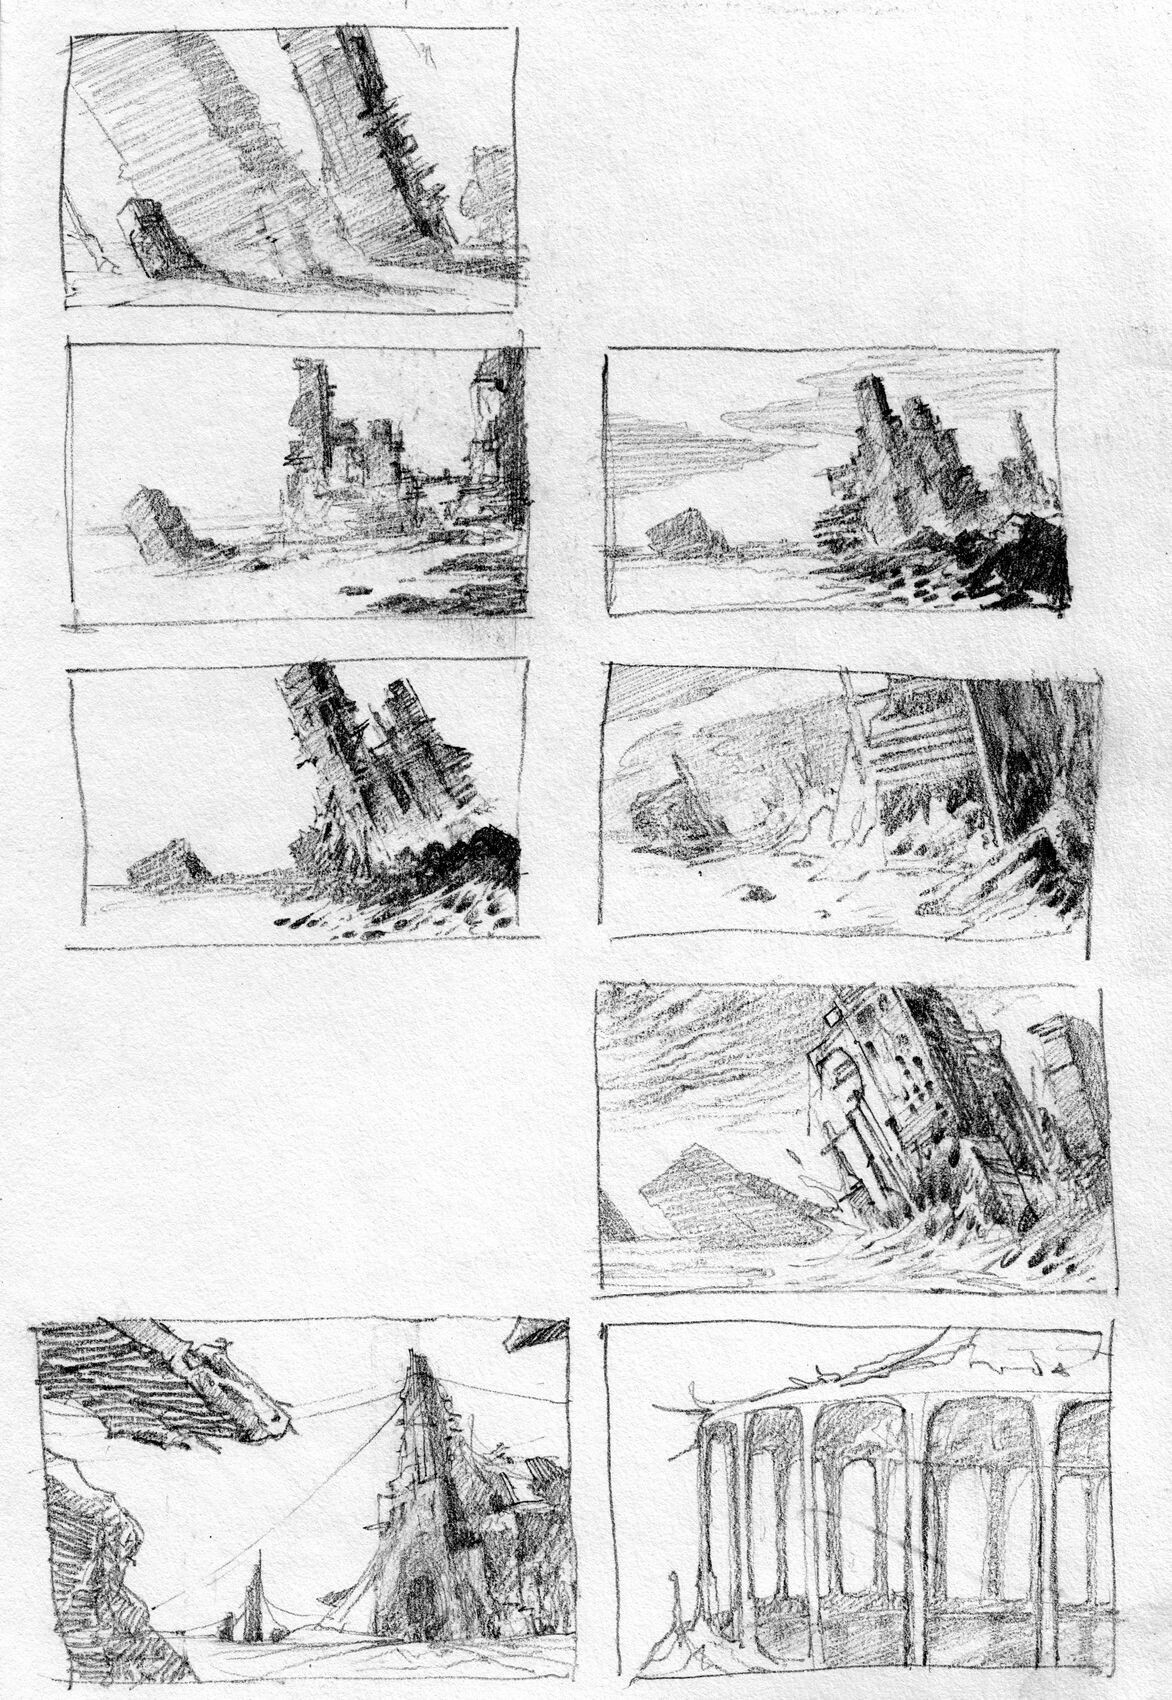 Stijn windig stijn windig thumbnails 02 small